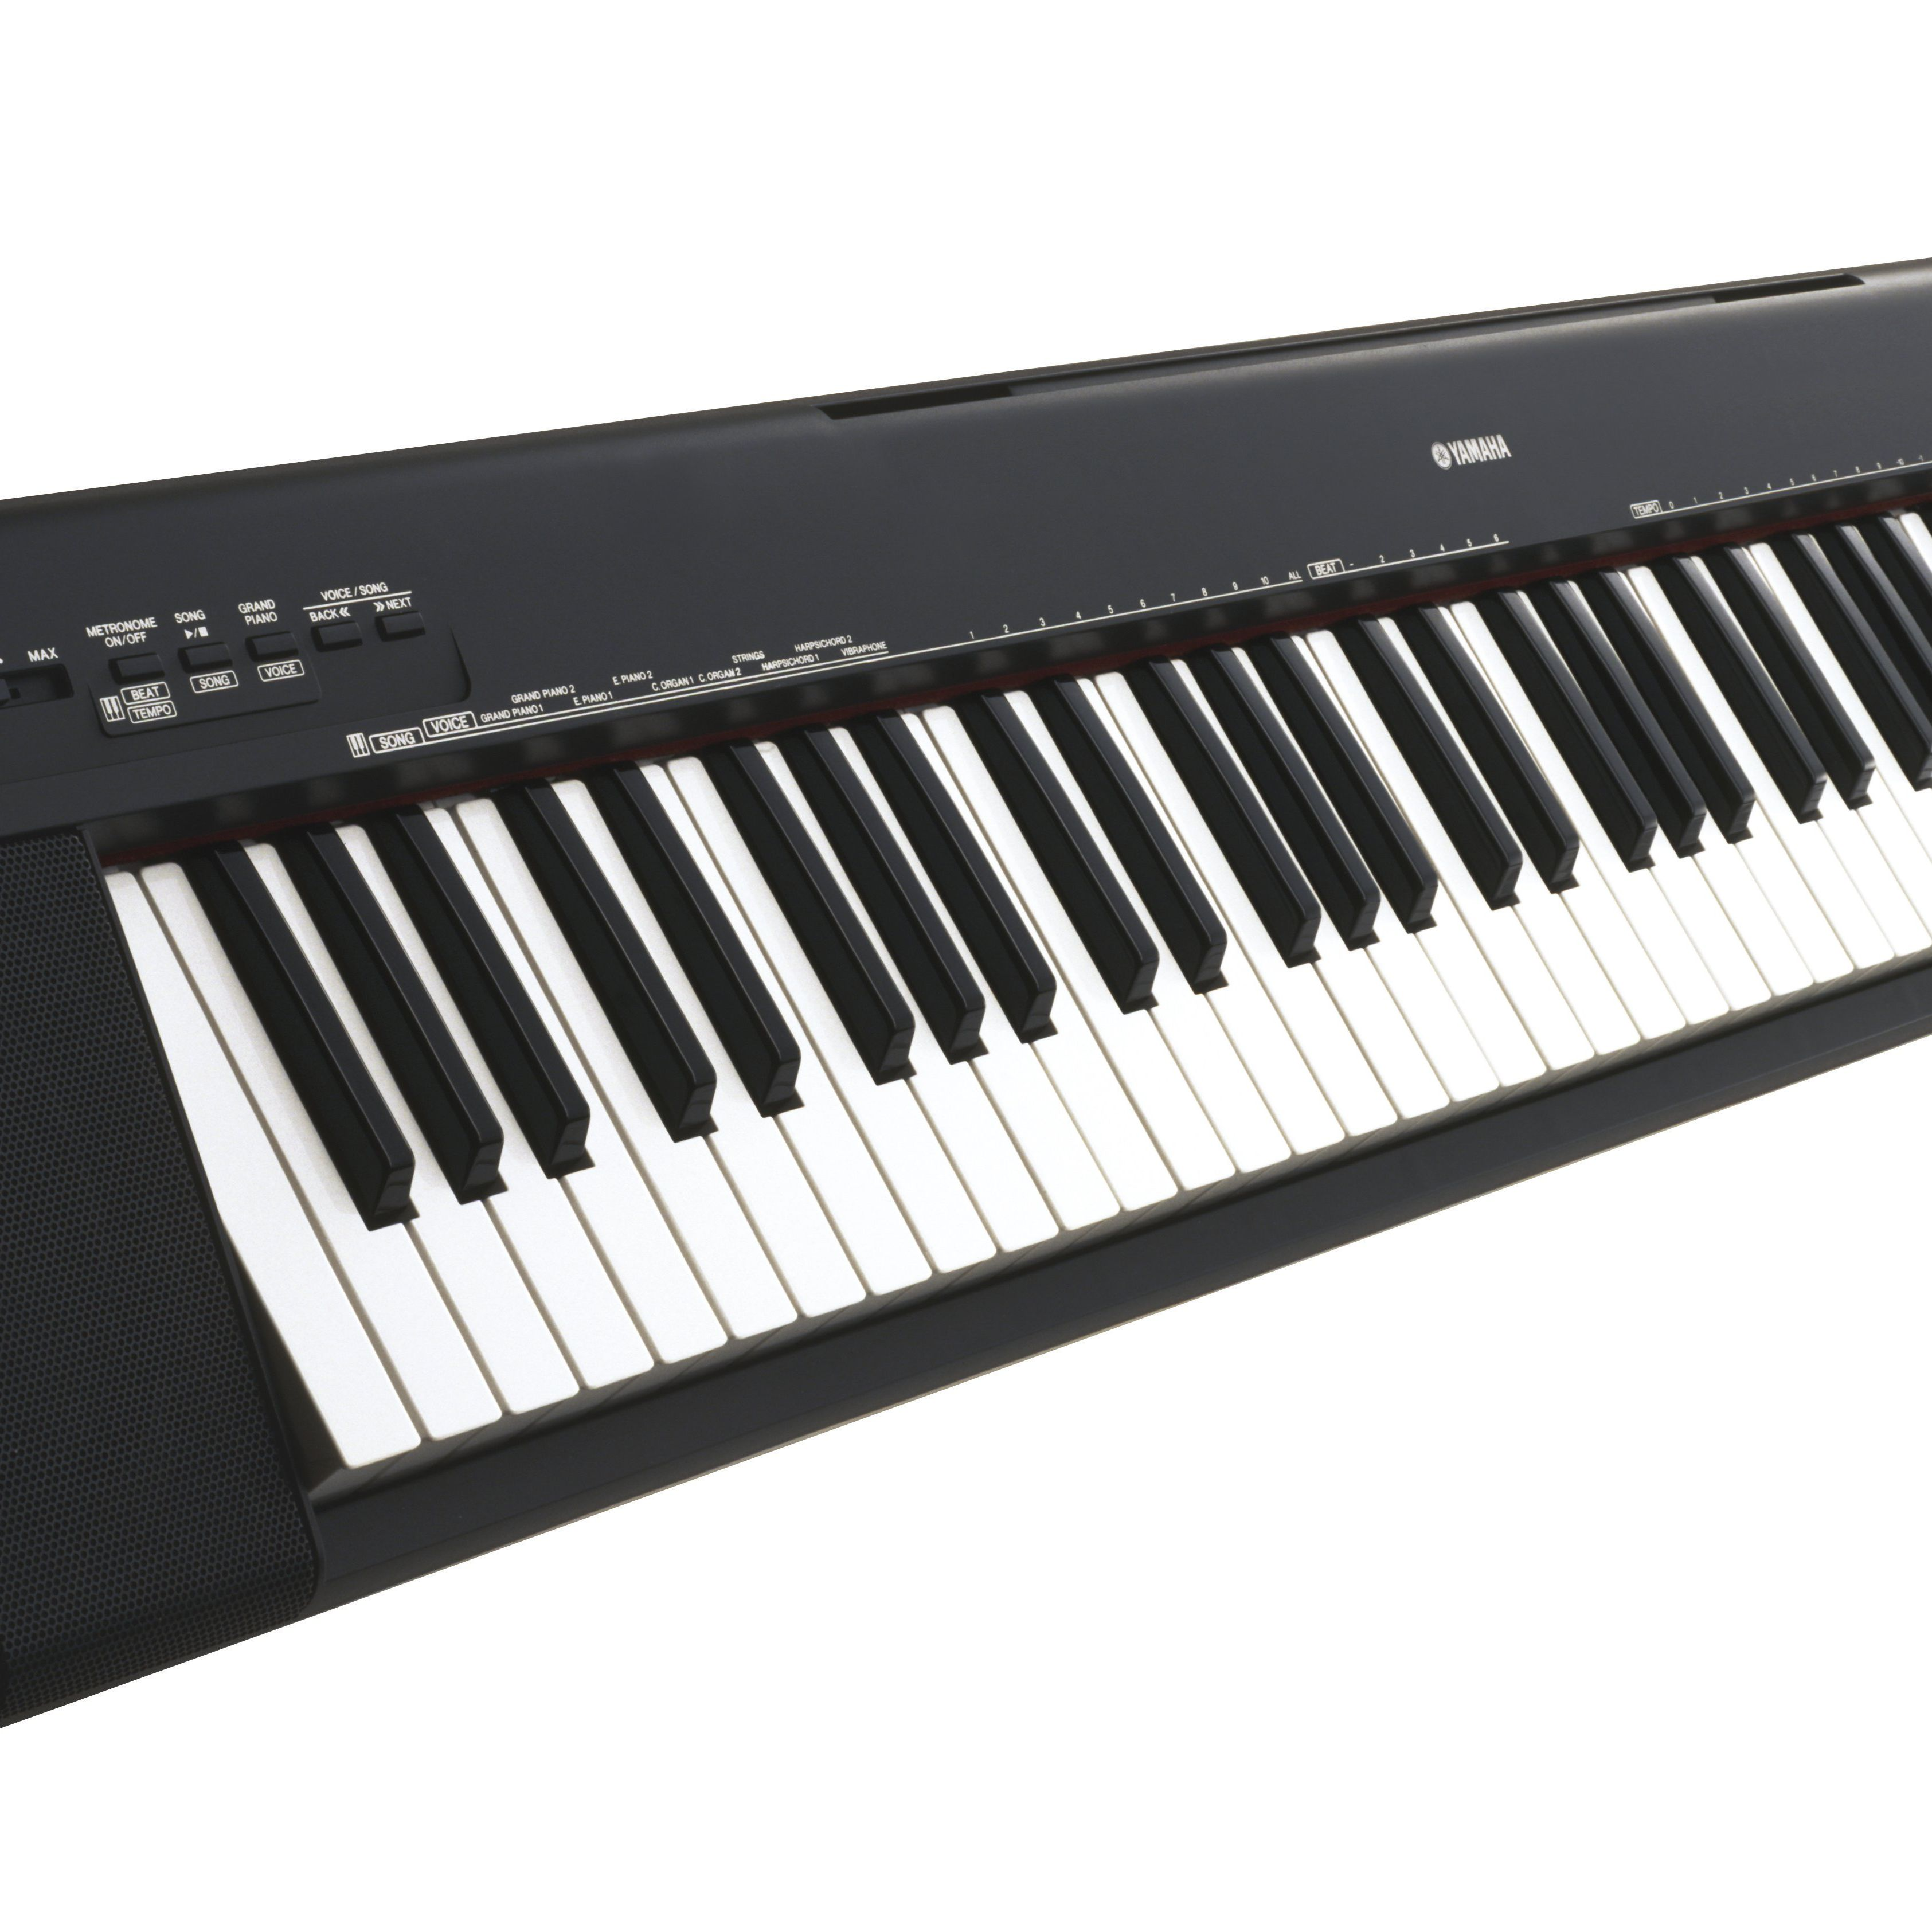 Review of the Yamaha Piaggero NP-30 Digital Piano